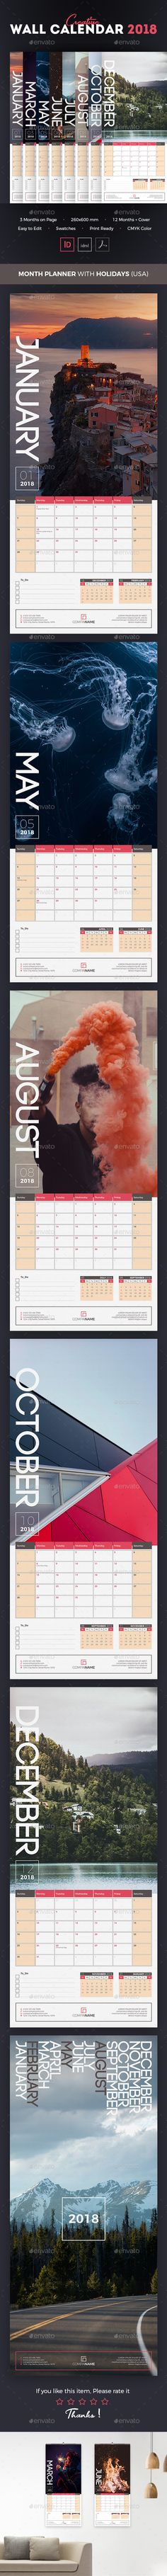 Wall Calendar 2018 Template Vector Eps, Ai Illustrator | Calendar Templates  | Pinterest | Calendar 2018, Ai Illustrator And Template